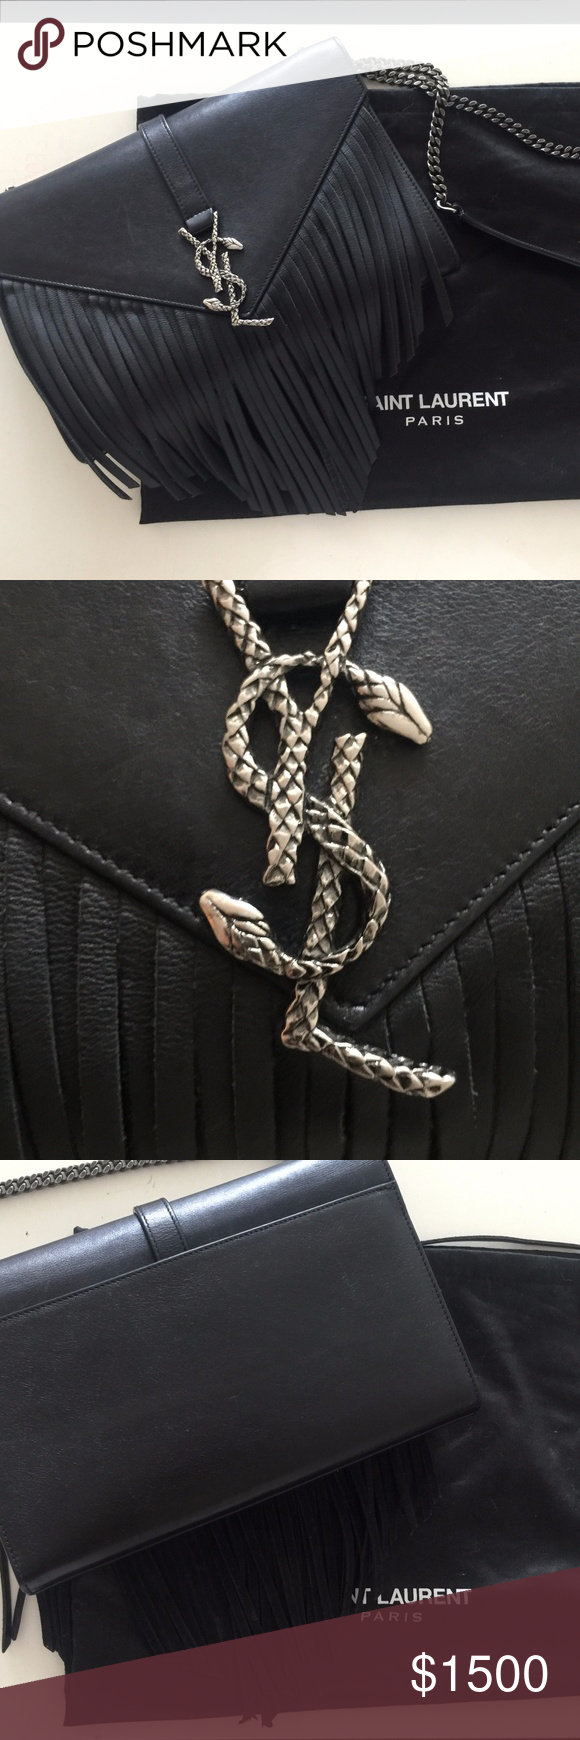 21c2ae20bbf6 Saint Laurent Black Leather Snake logo Fringed Bag Gentle used limited  edition YSL calfskin leather snake logo fringed bag. Comes with all tags